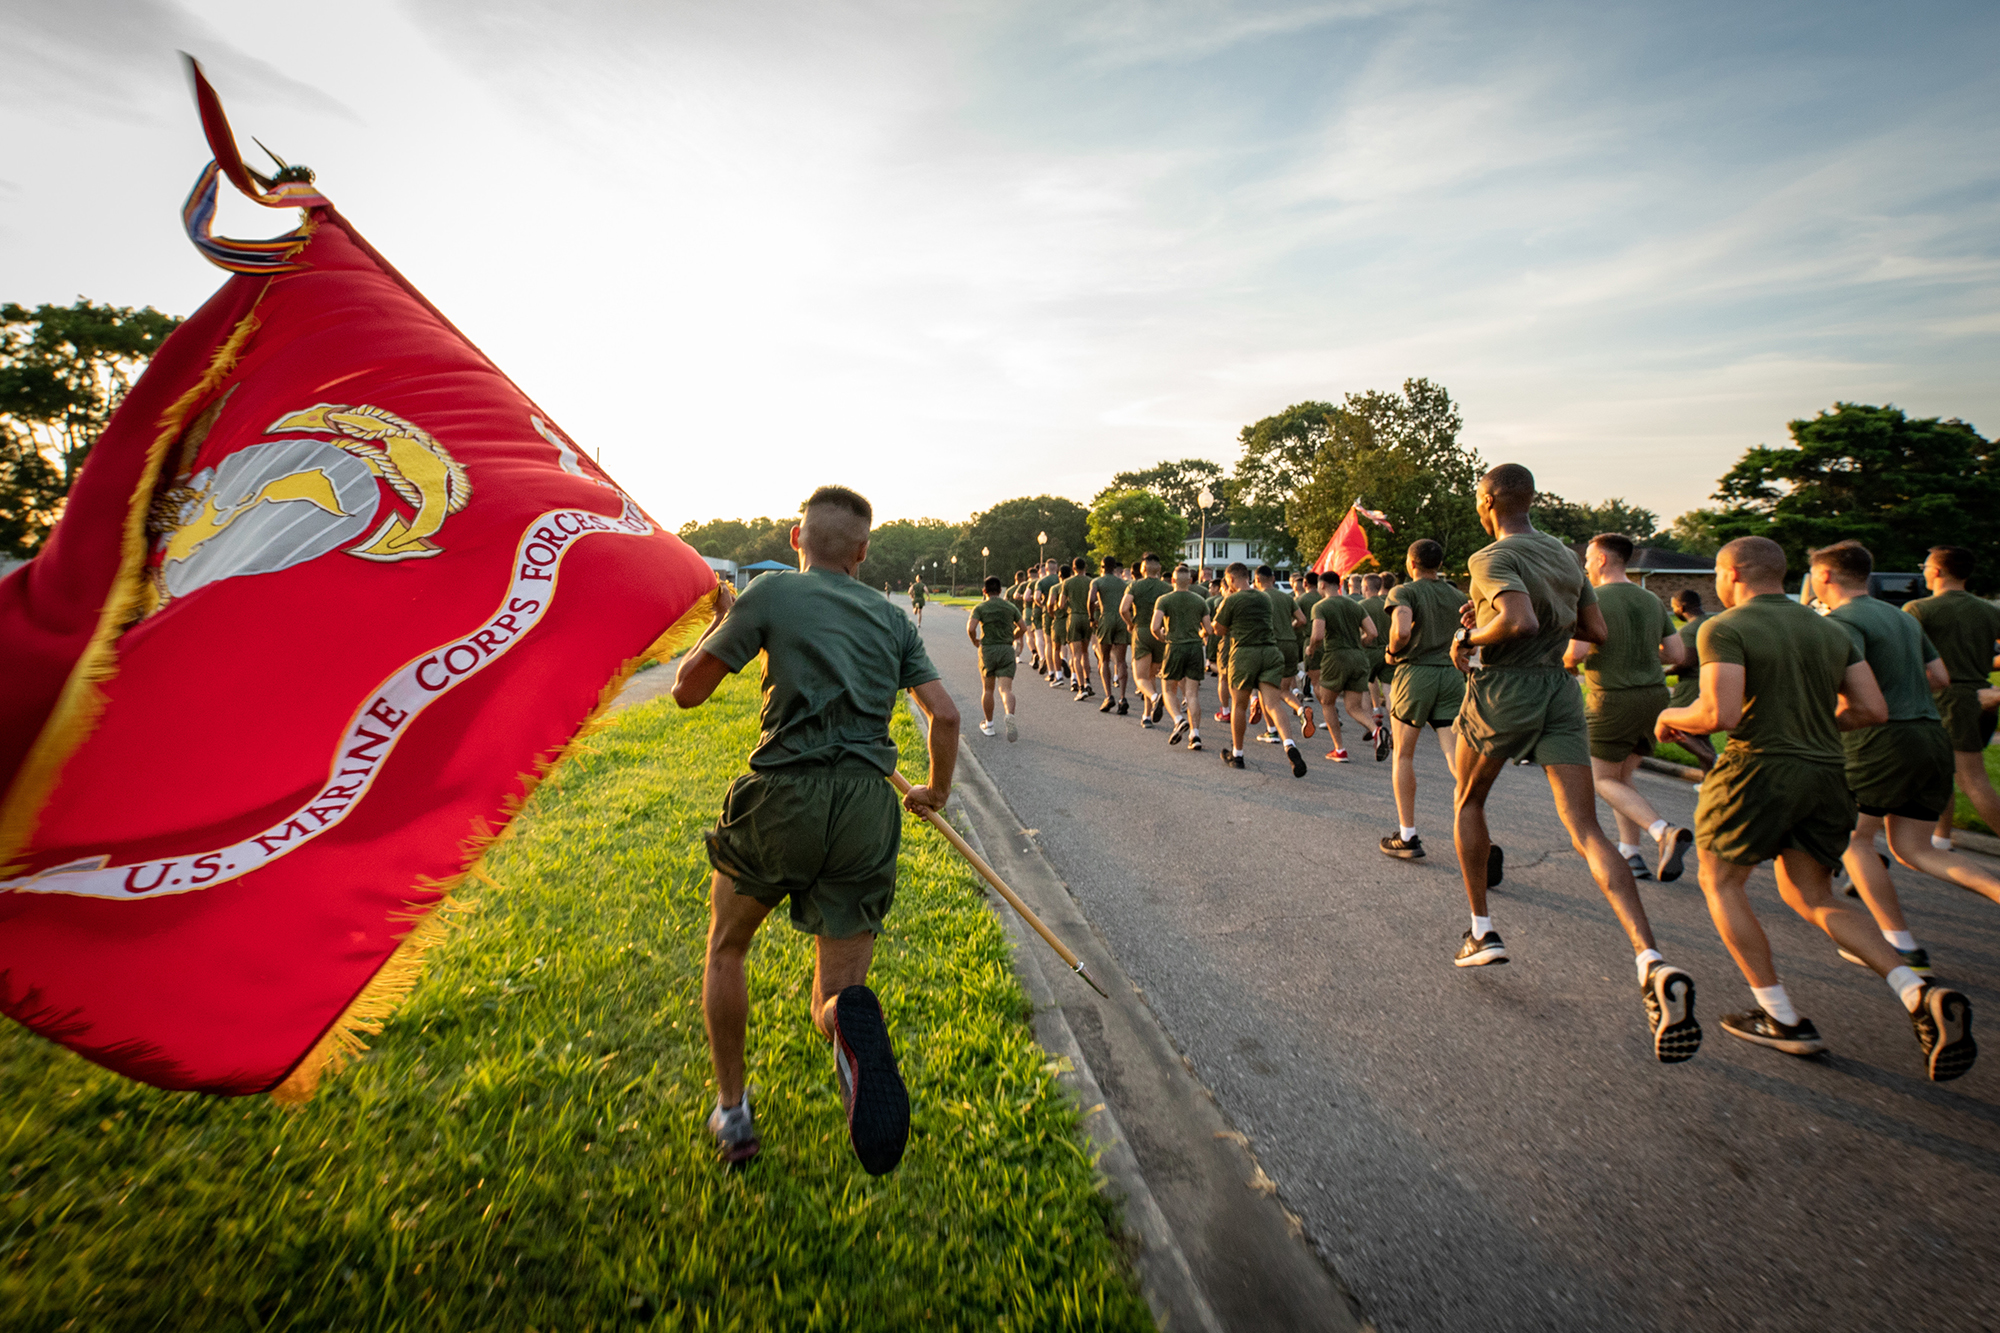 A U.S. Marine runs with the Marine Corps Forces South guidon during a formation run around Marine Corps Support Facility New Orleans on June 15, 2021. (Cpl. James Stanfield/Marine Corps)